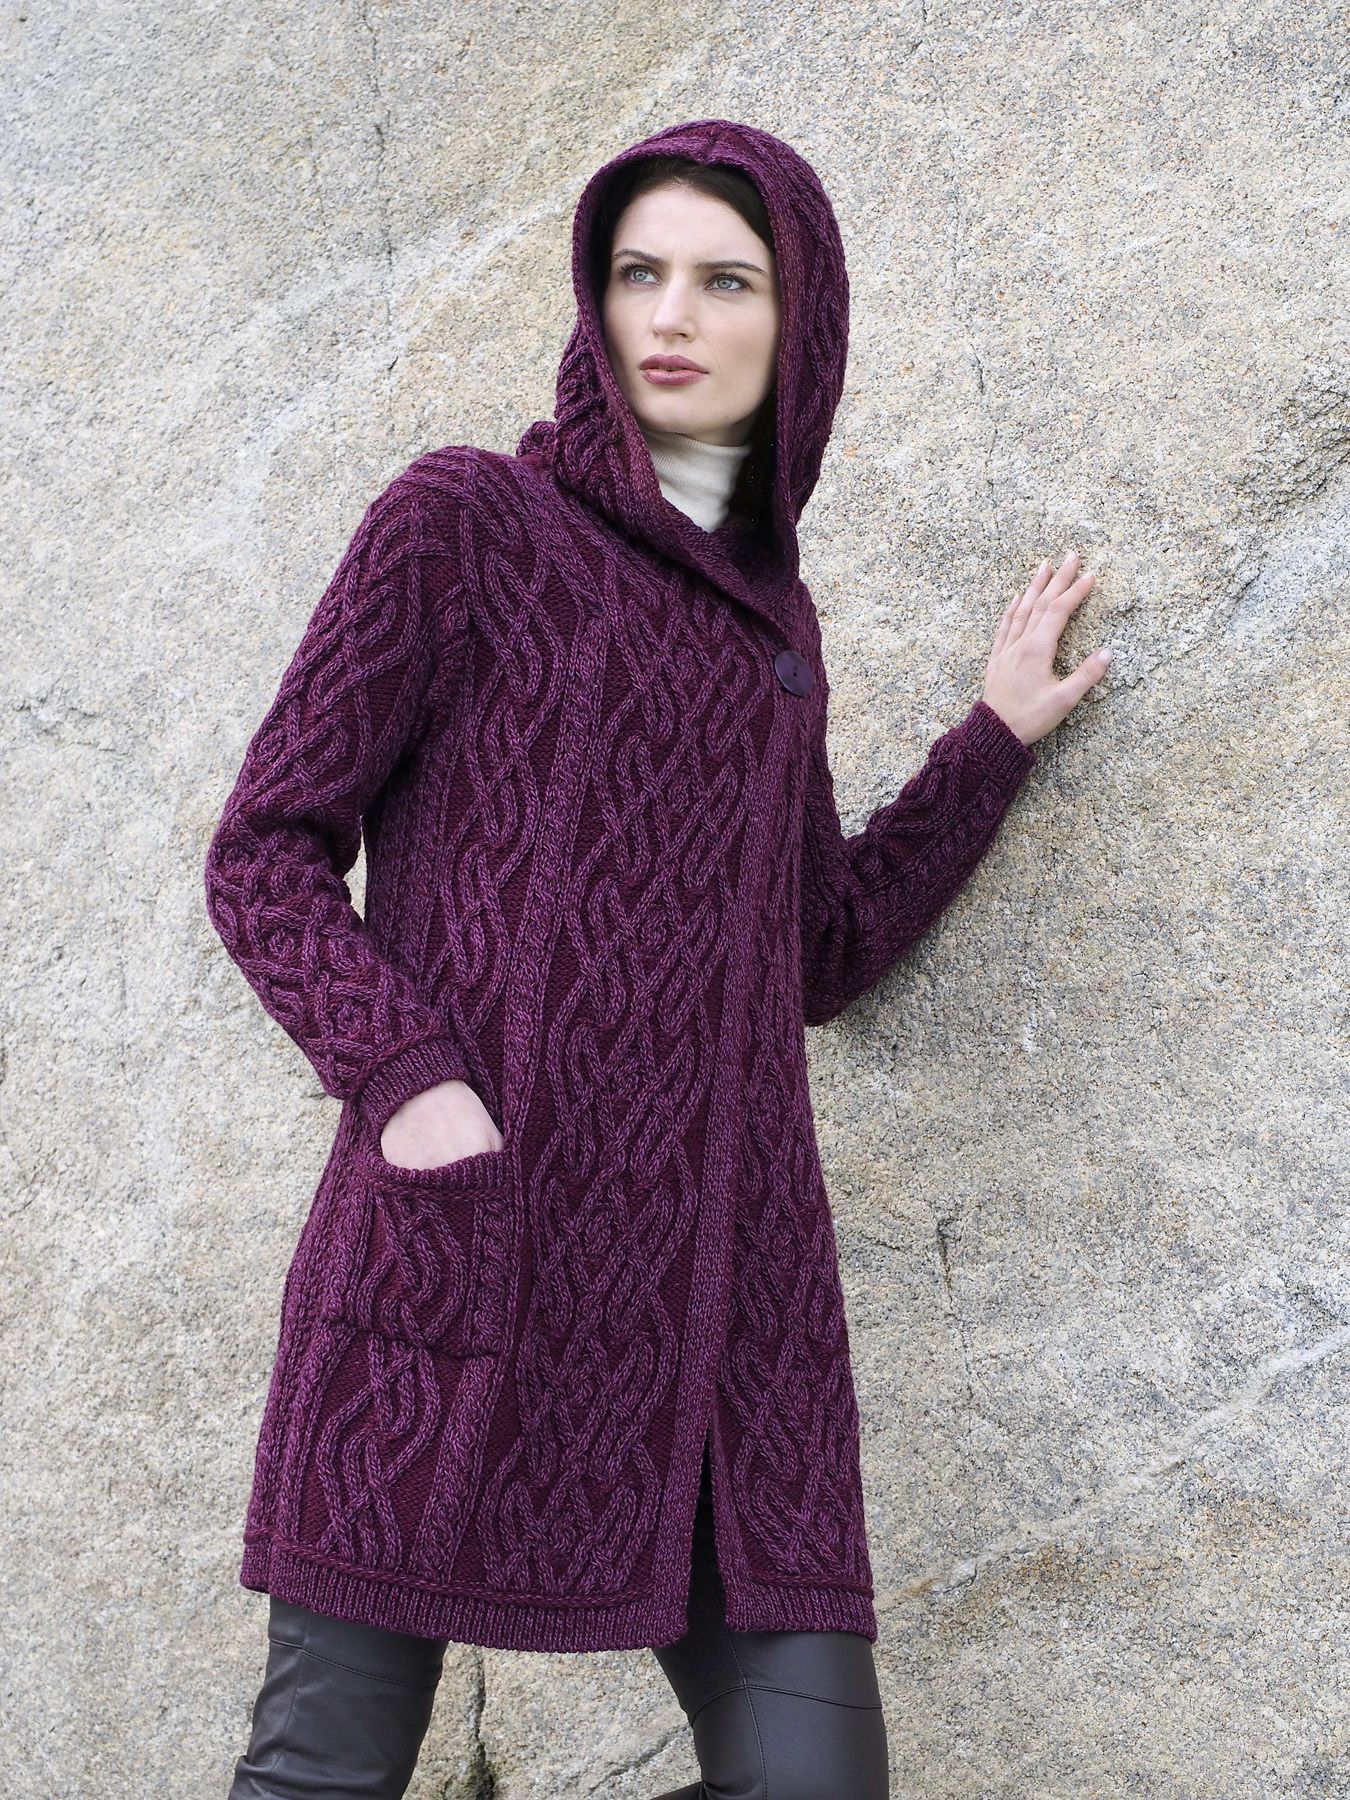 Aran Knitwear Design by Natallia kulikouskaya for WEST END KNITWEAR ... 3df5c24db